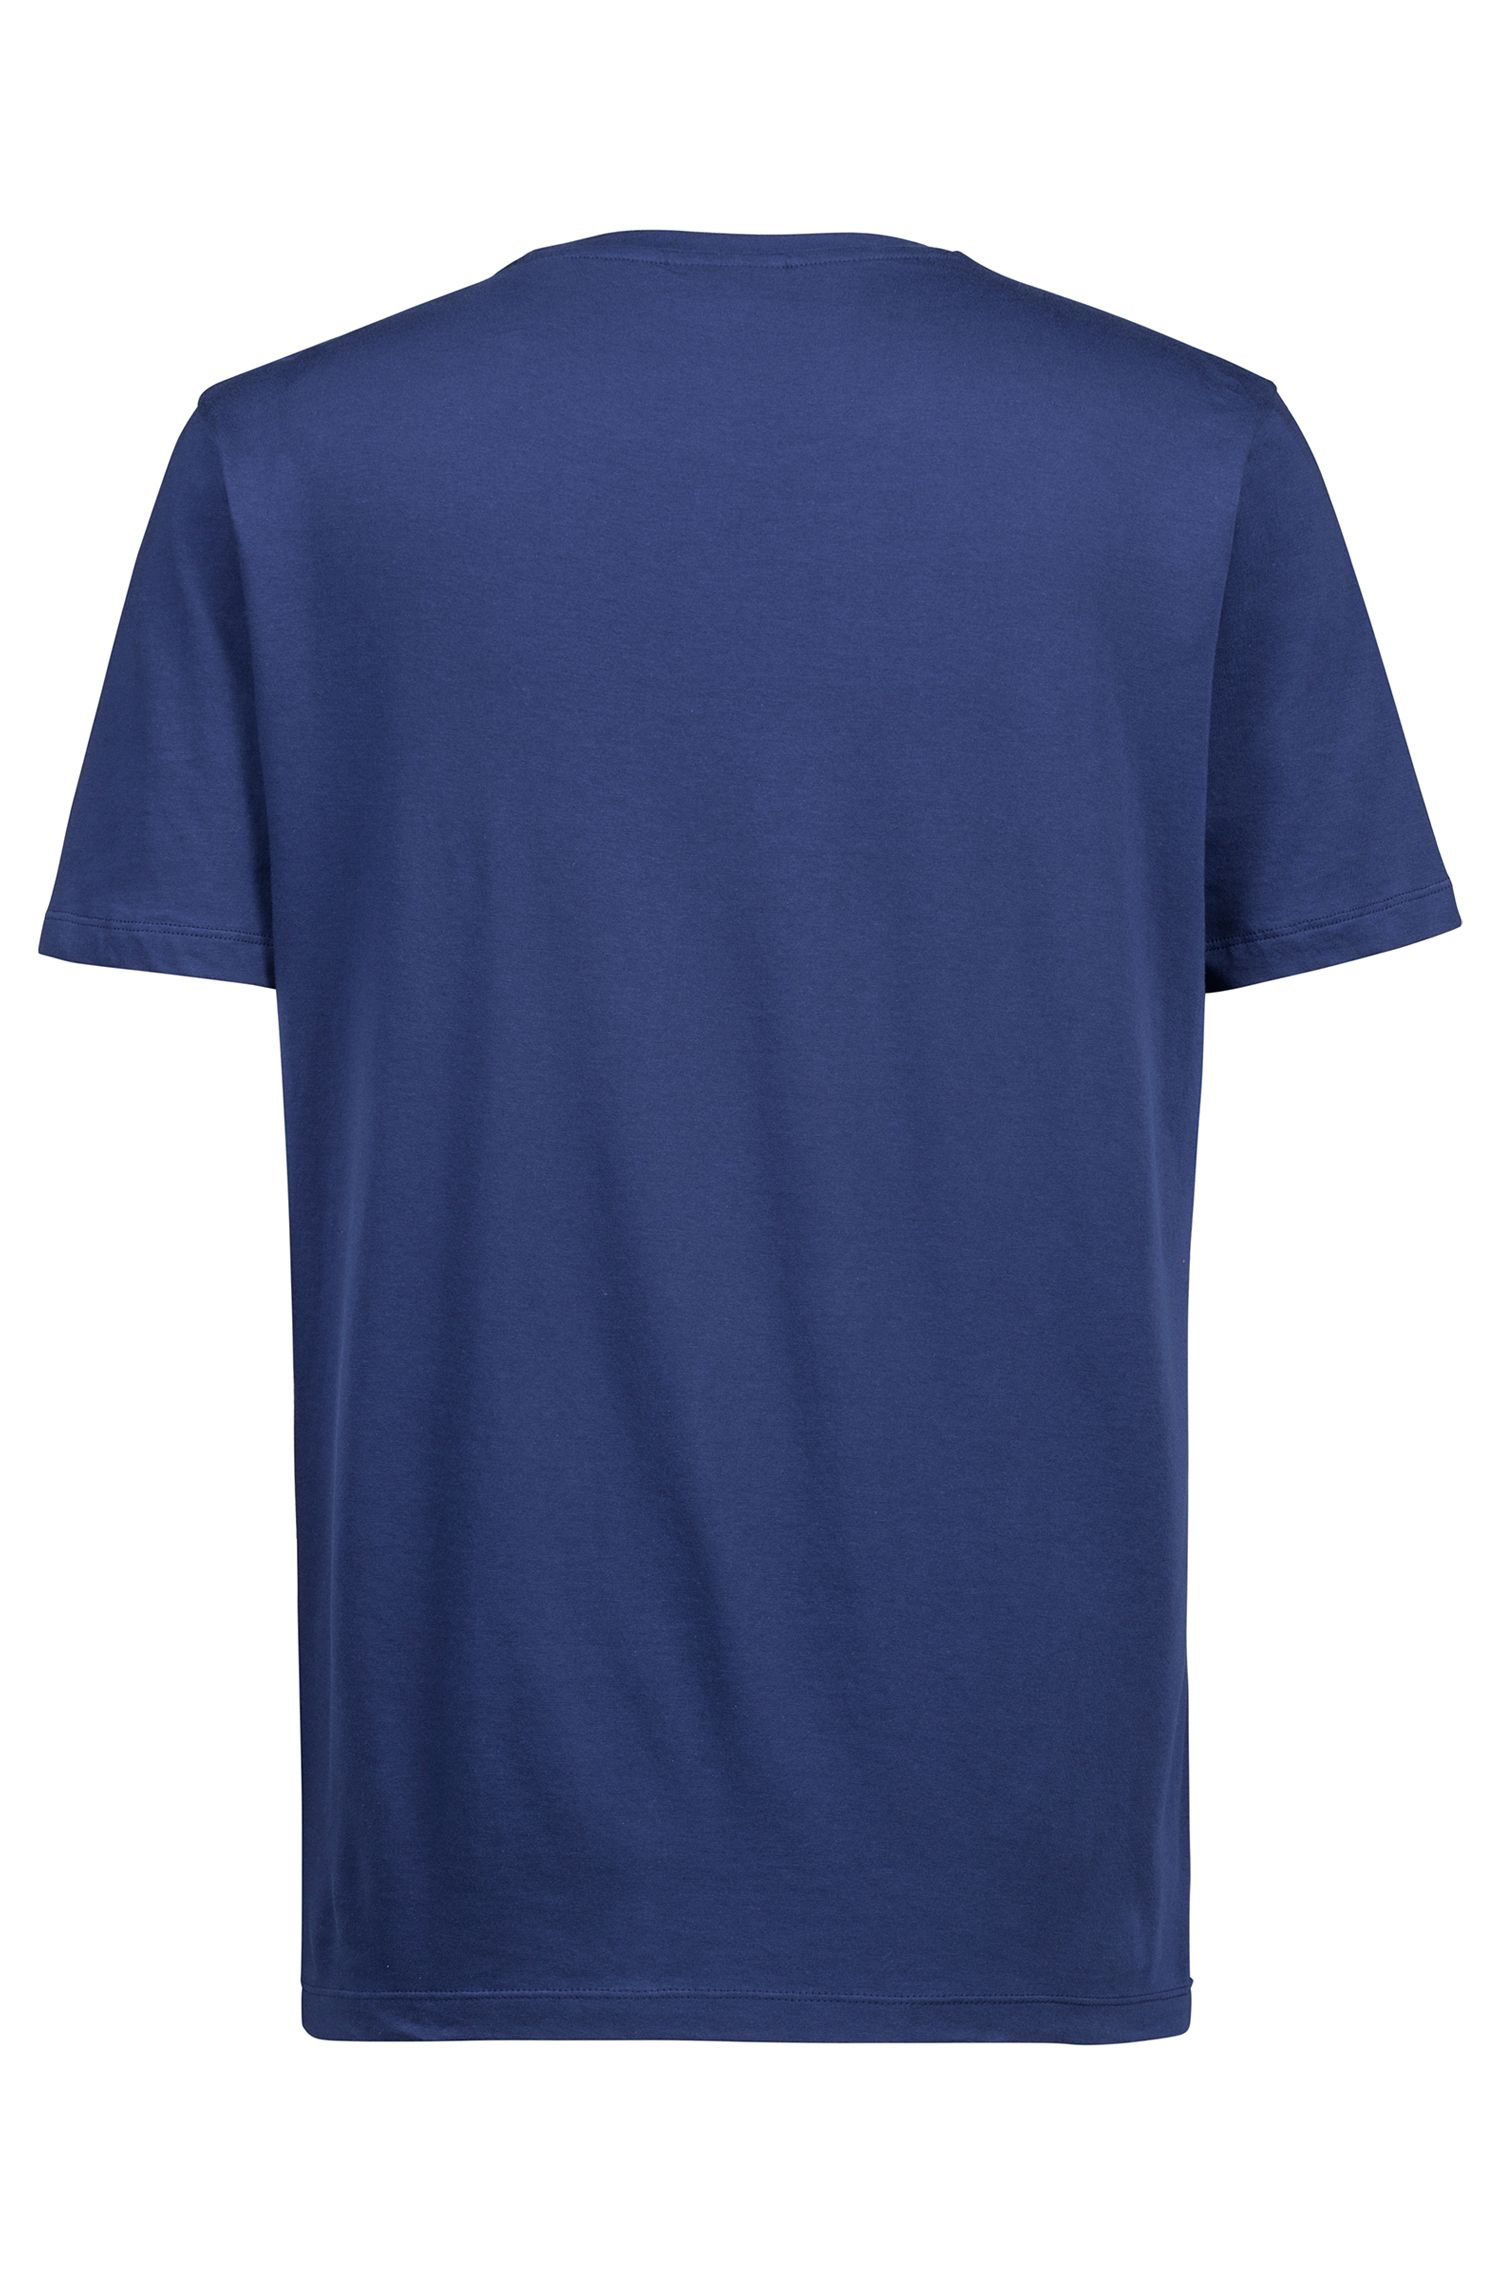 Relaxed-fit logo T-shirt in cotton jersey, Dark Blue